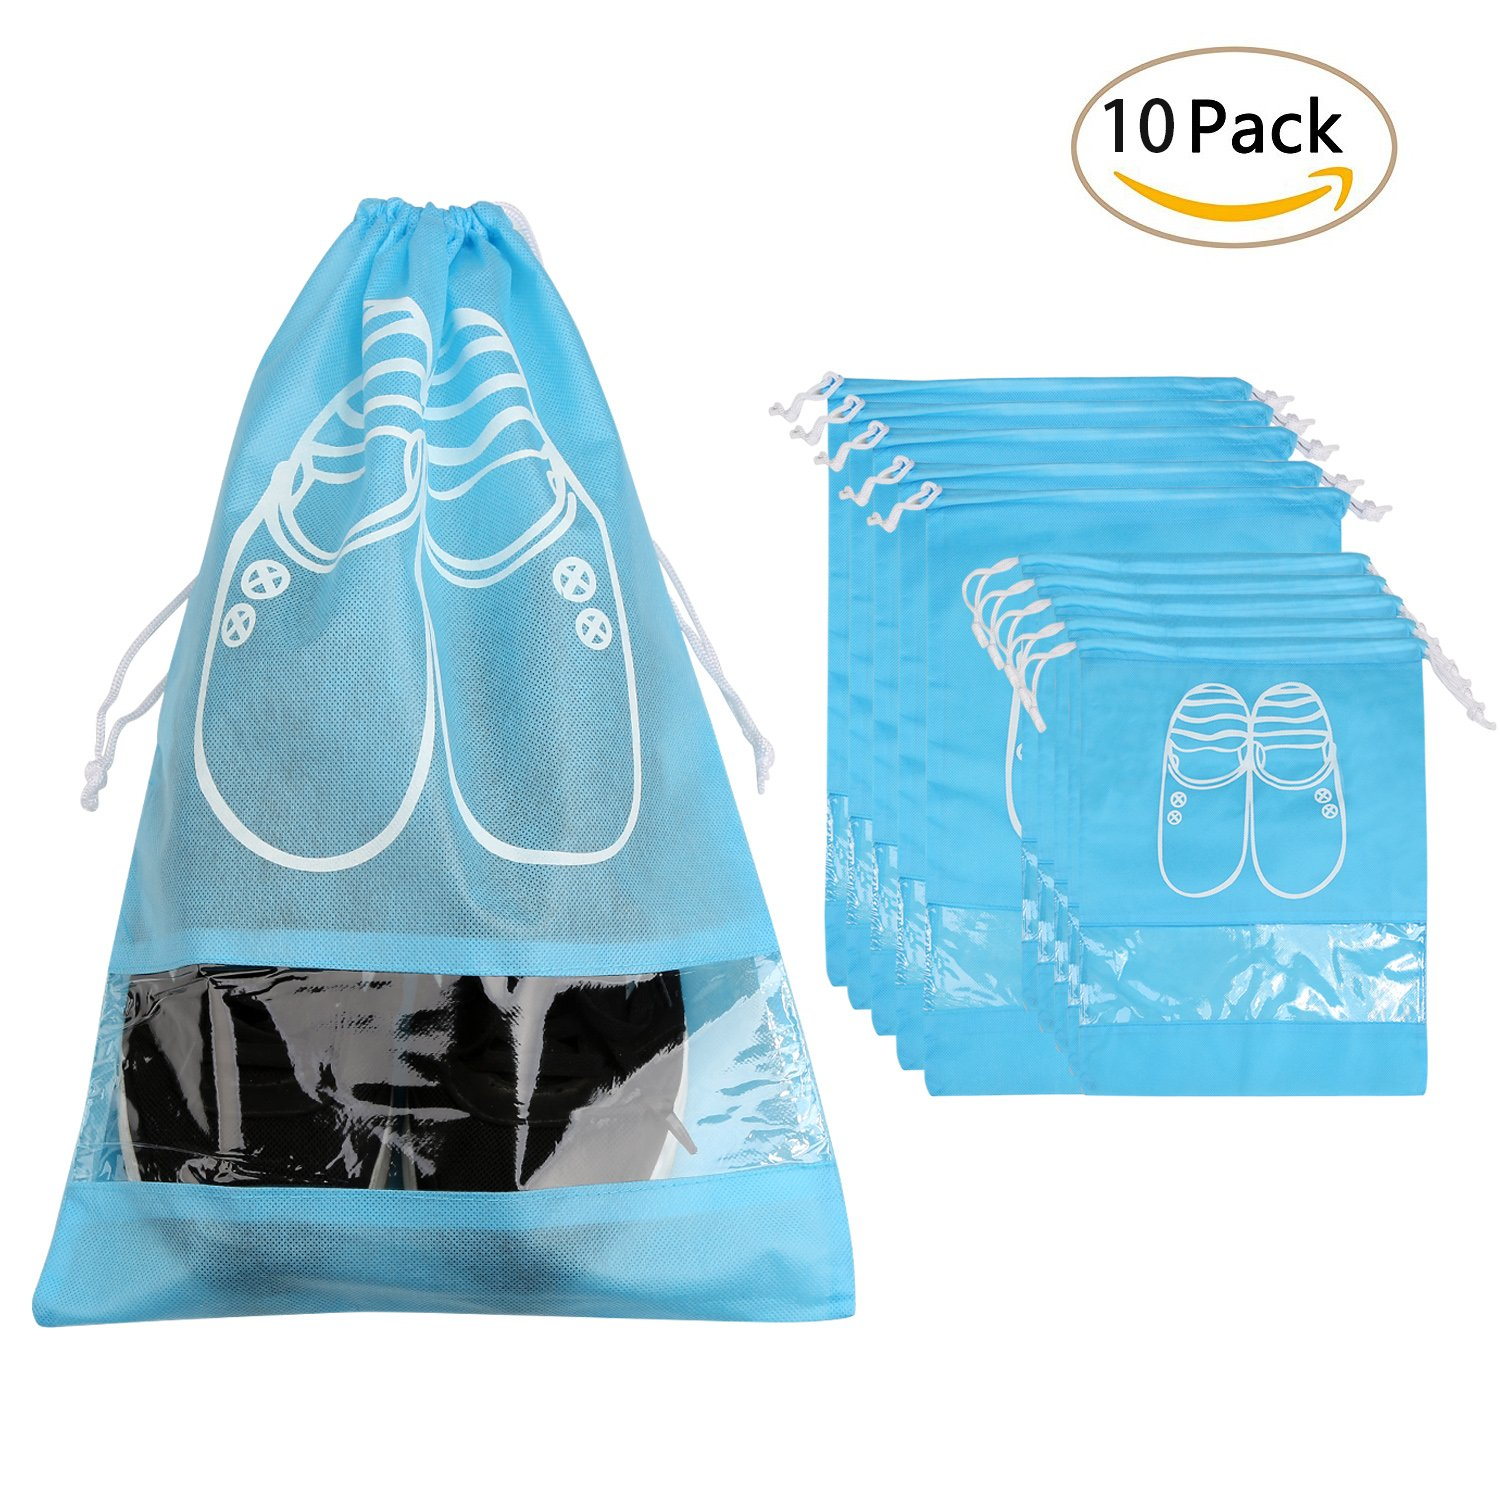 LEADSTAR Pack of 10pcs Non-woven Shoe Bags Dust,Drawstring Shoe Bags Dust-proof Breathable Organizer with Transparent Window Travel Shoe Storage Bags